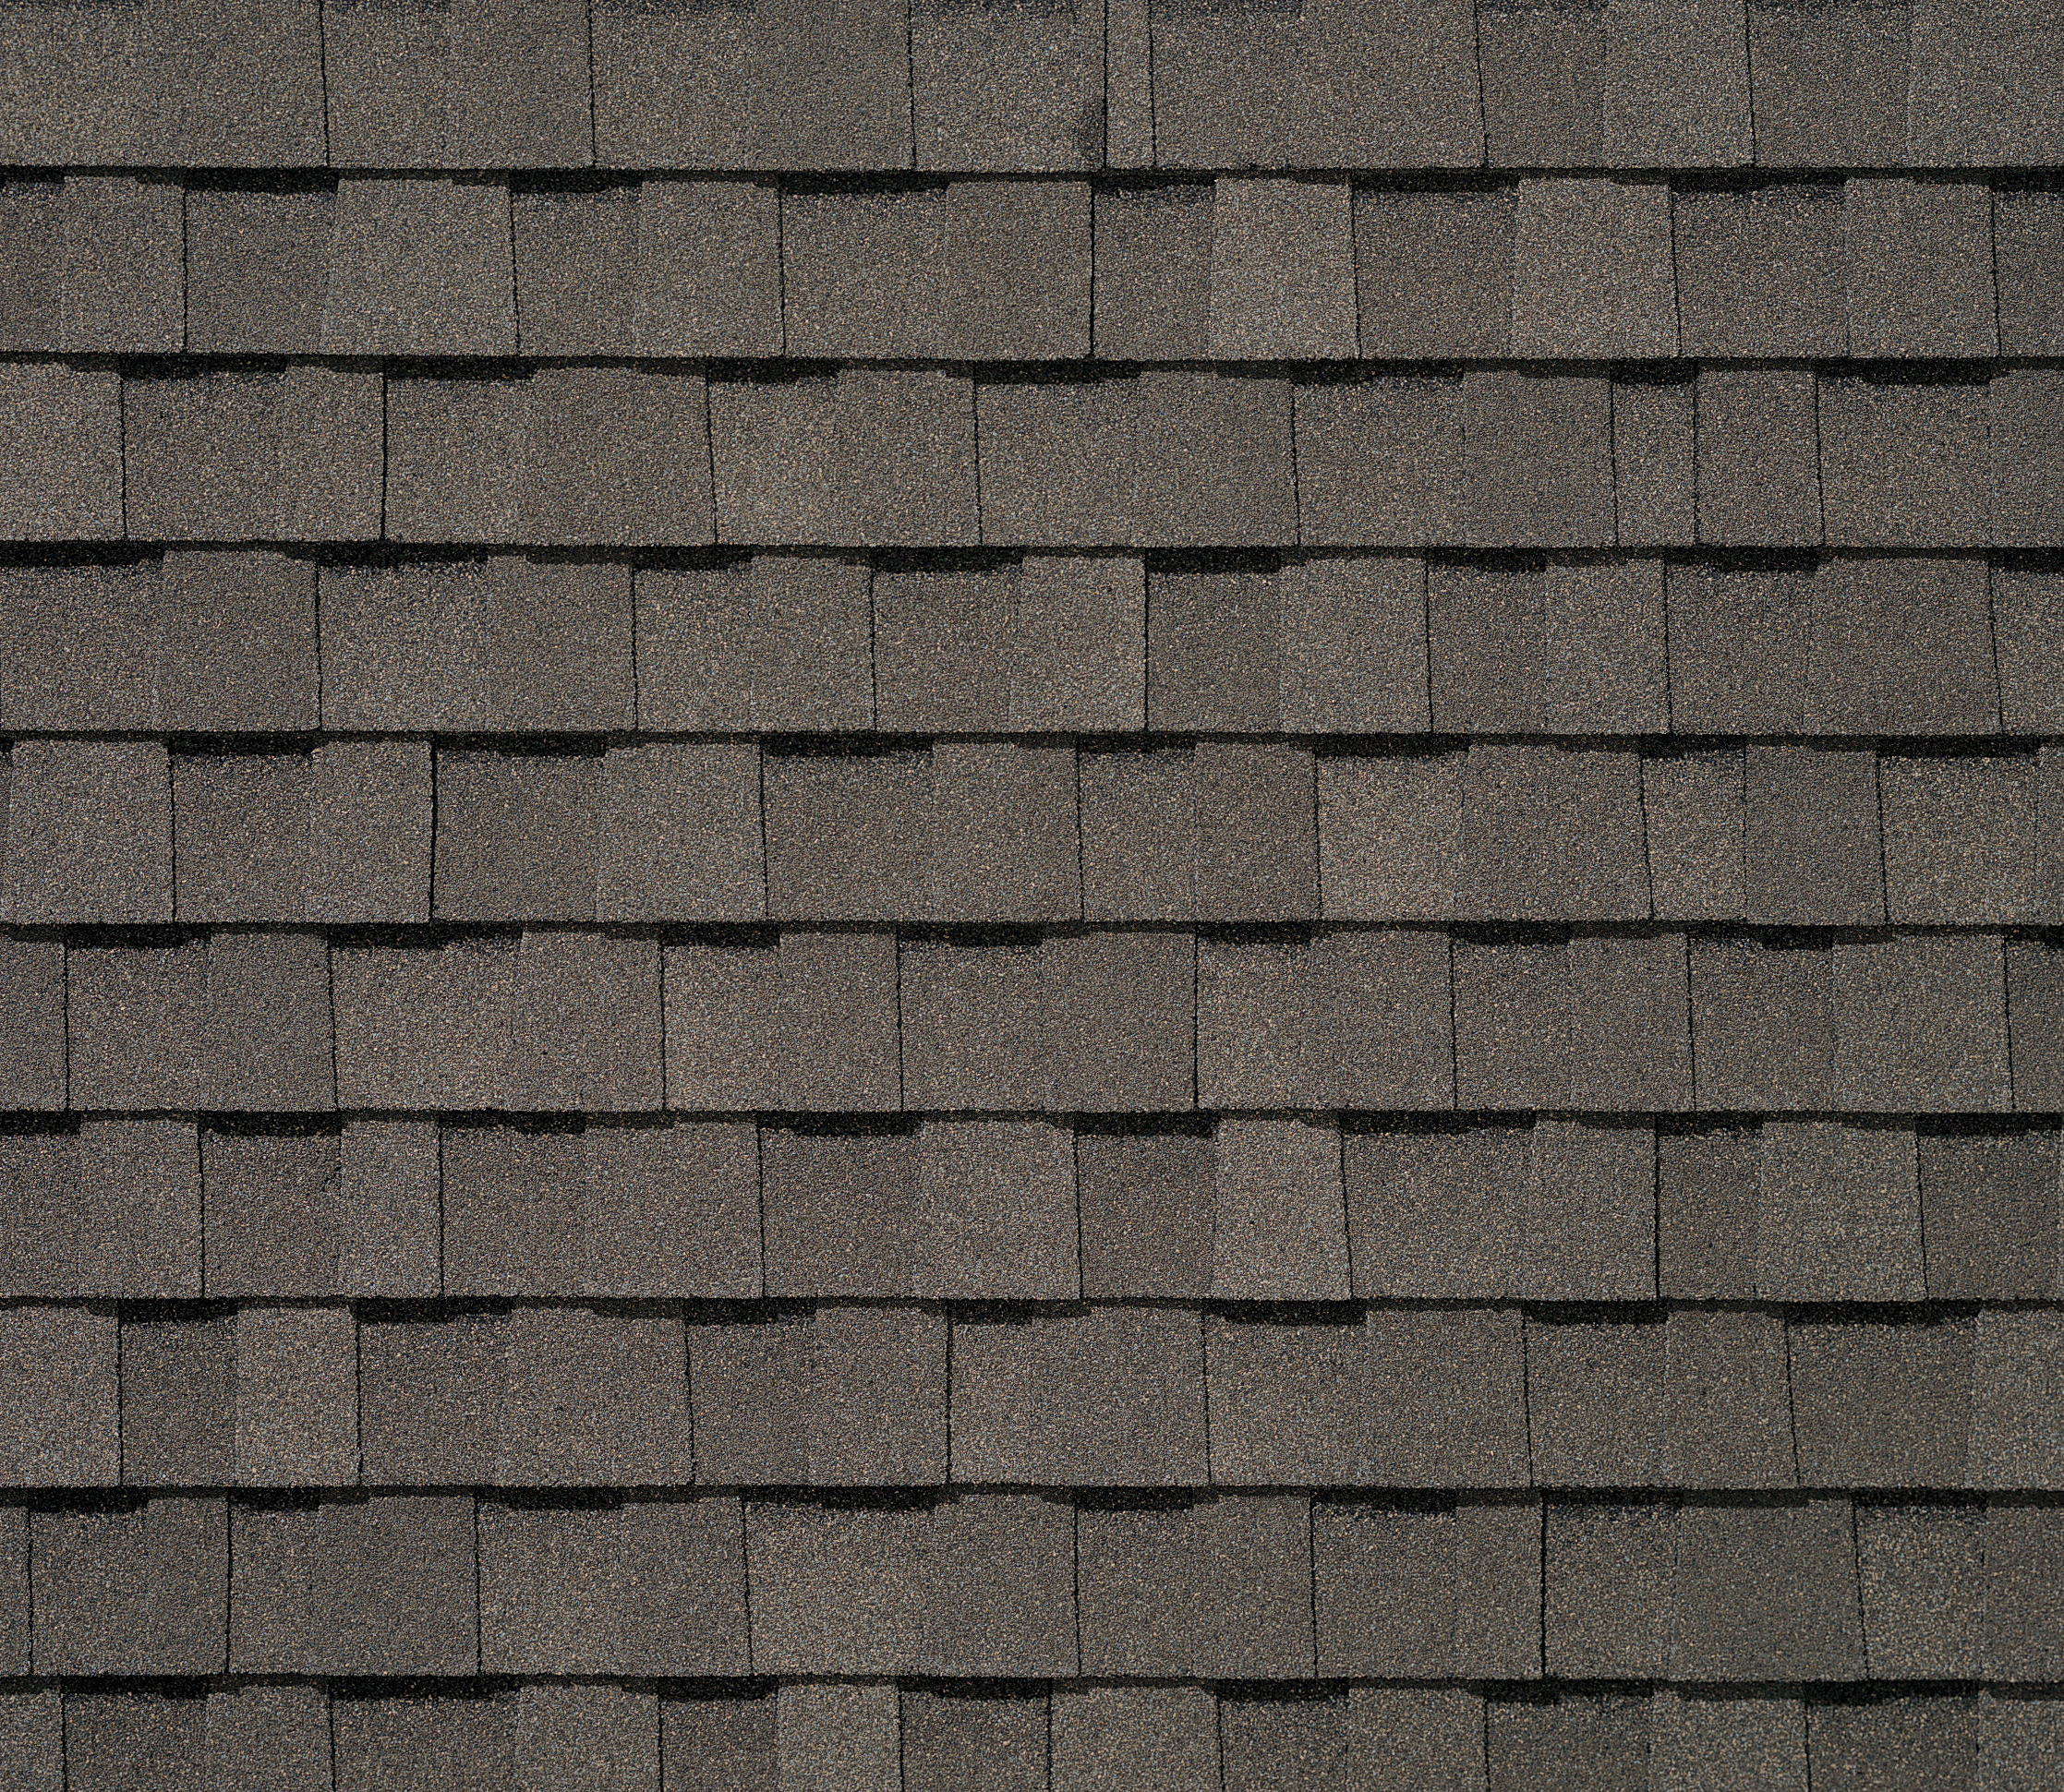 Tamko Shingles Weathered Wood